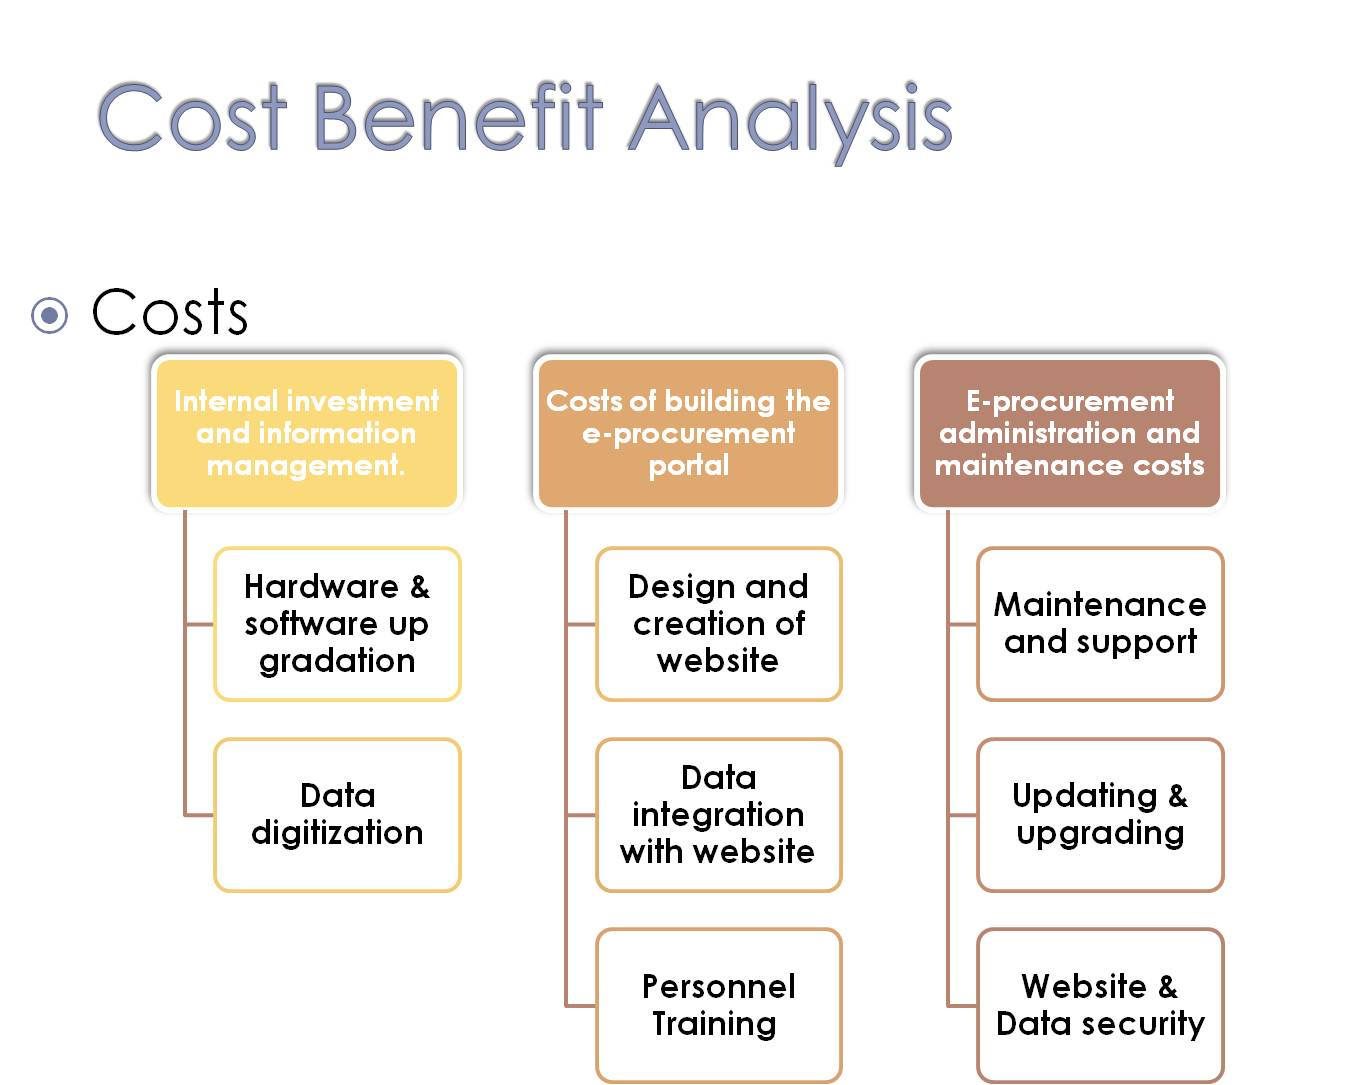 Cost benefit analysisis